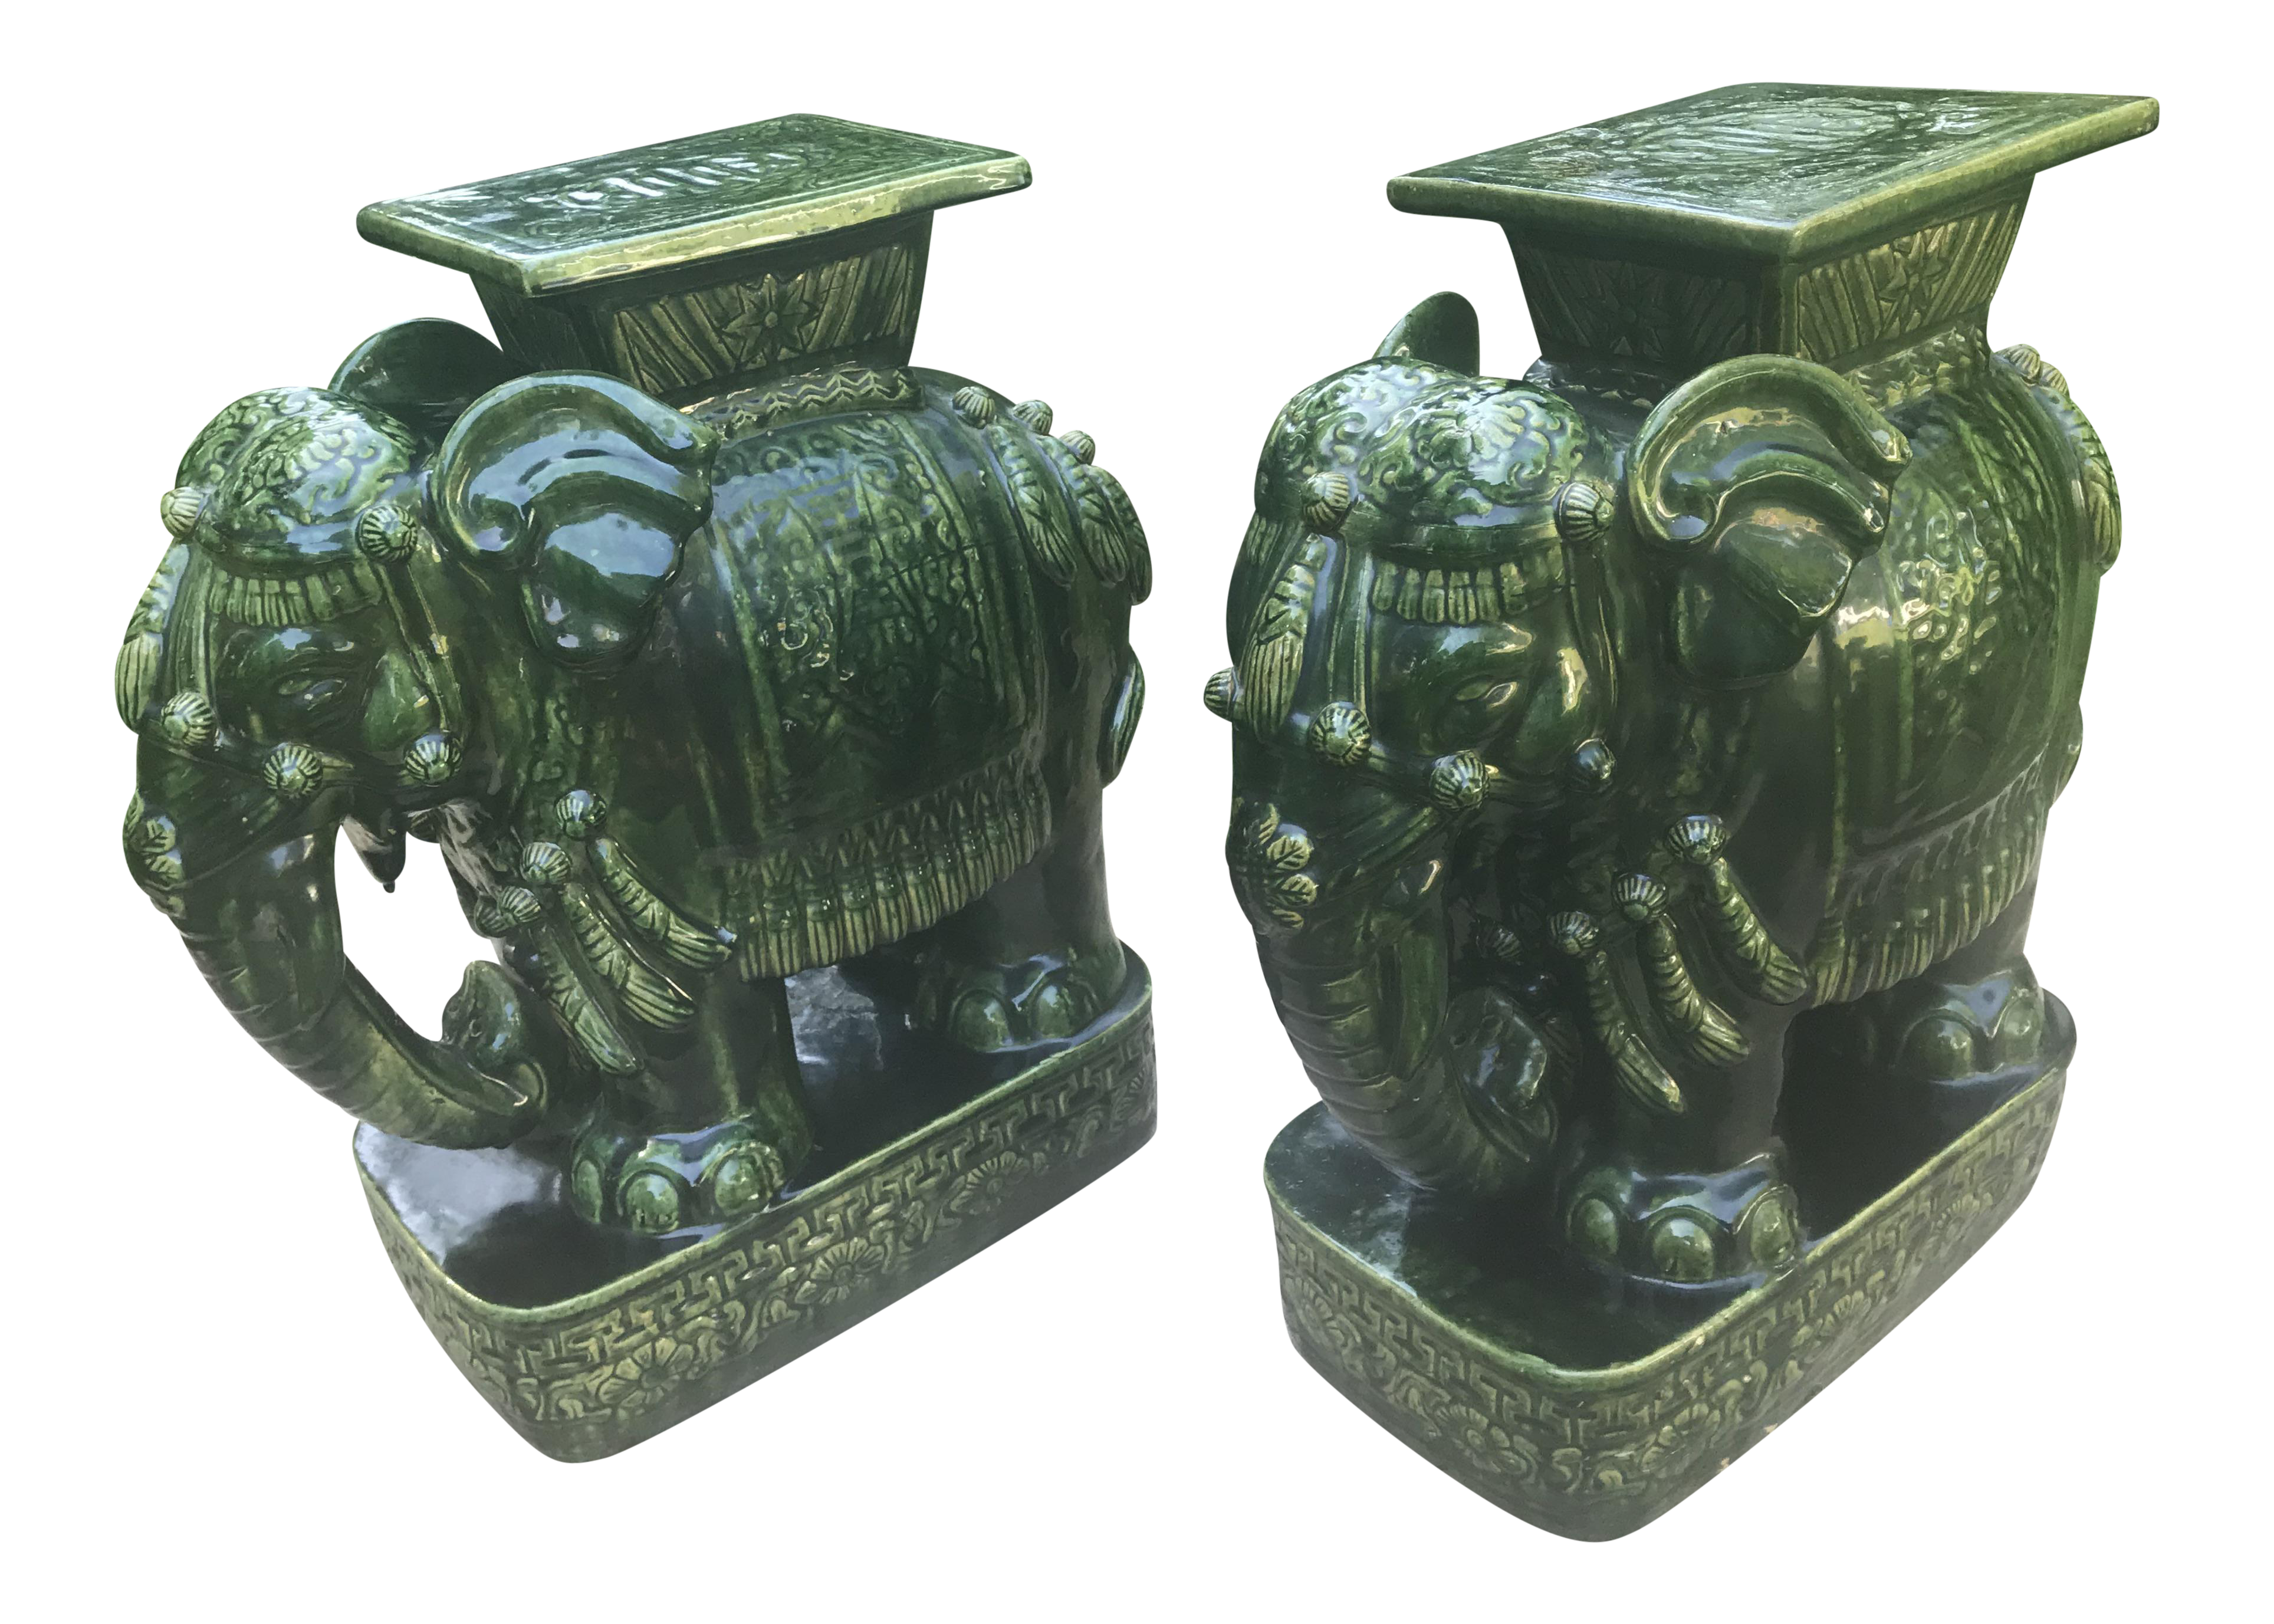 Vintage Green Glazed Elephant Garden Stools/Seats a Pair | Chairish